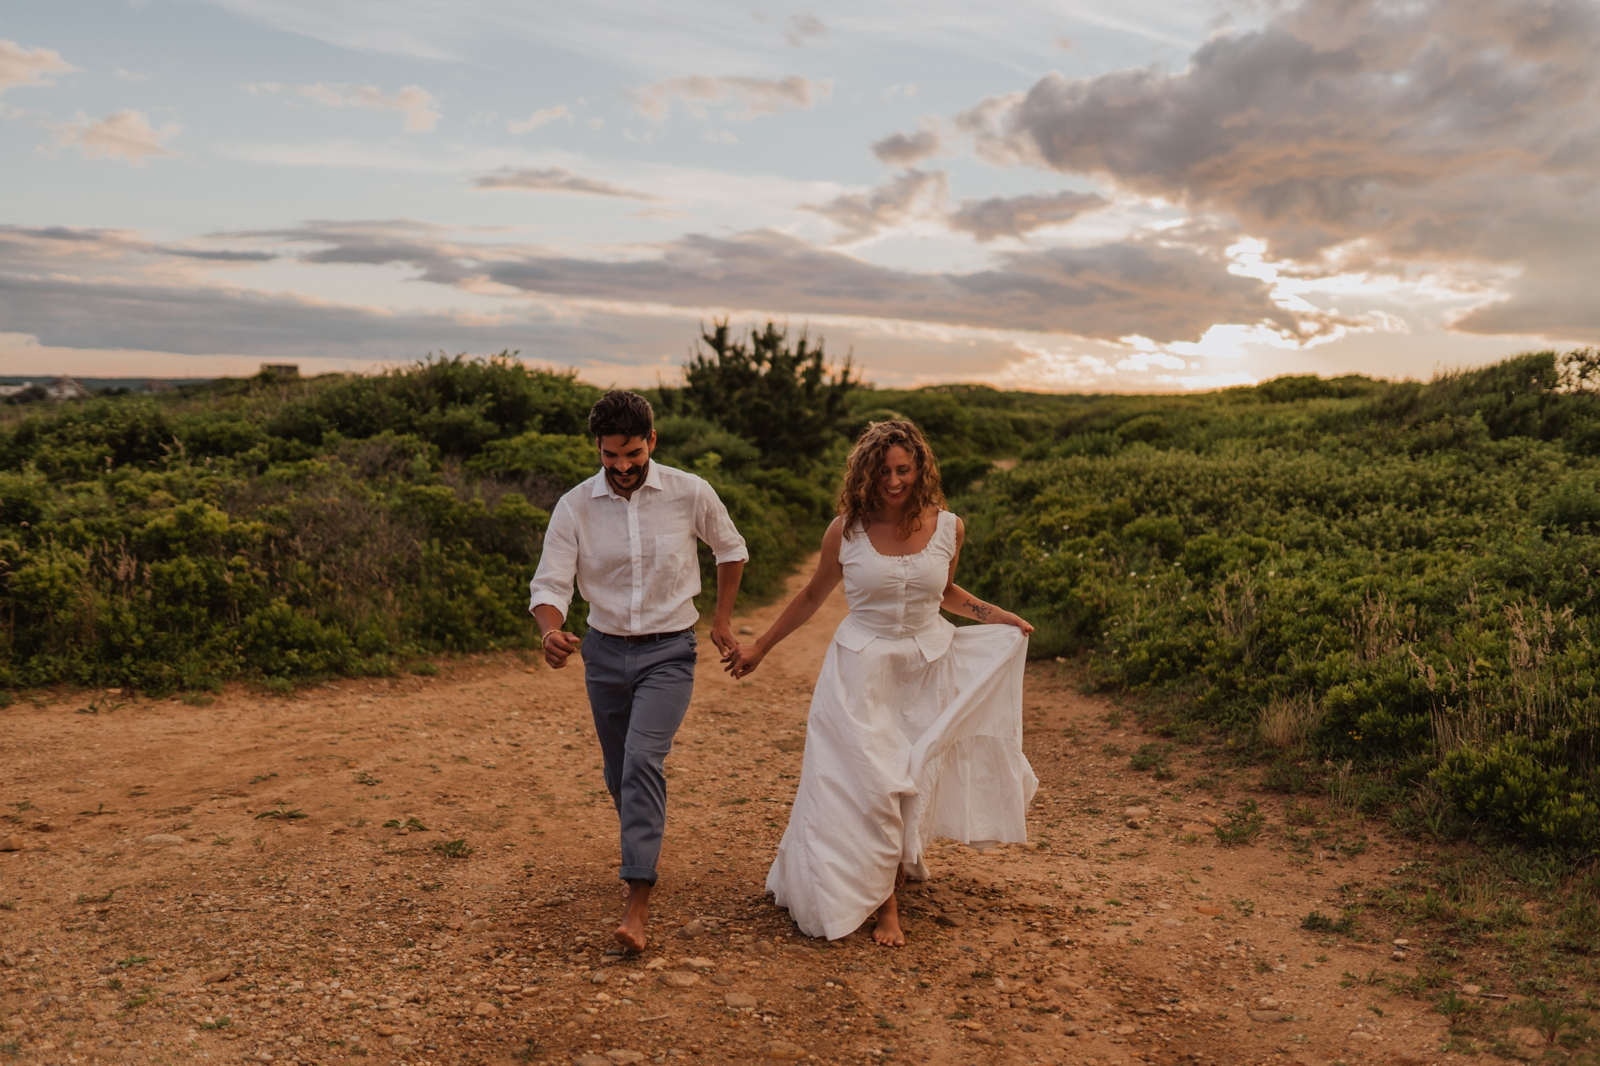 JJP_Nikki & Bud_Shadmoor_Montauk_NY_Cliff Engagement Session114.jpg_blog.jpg